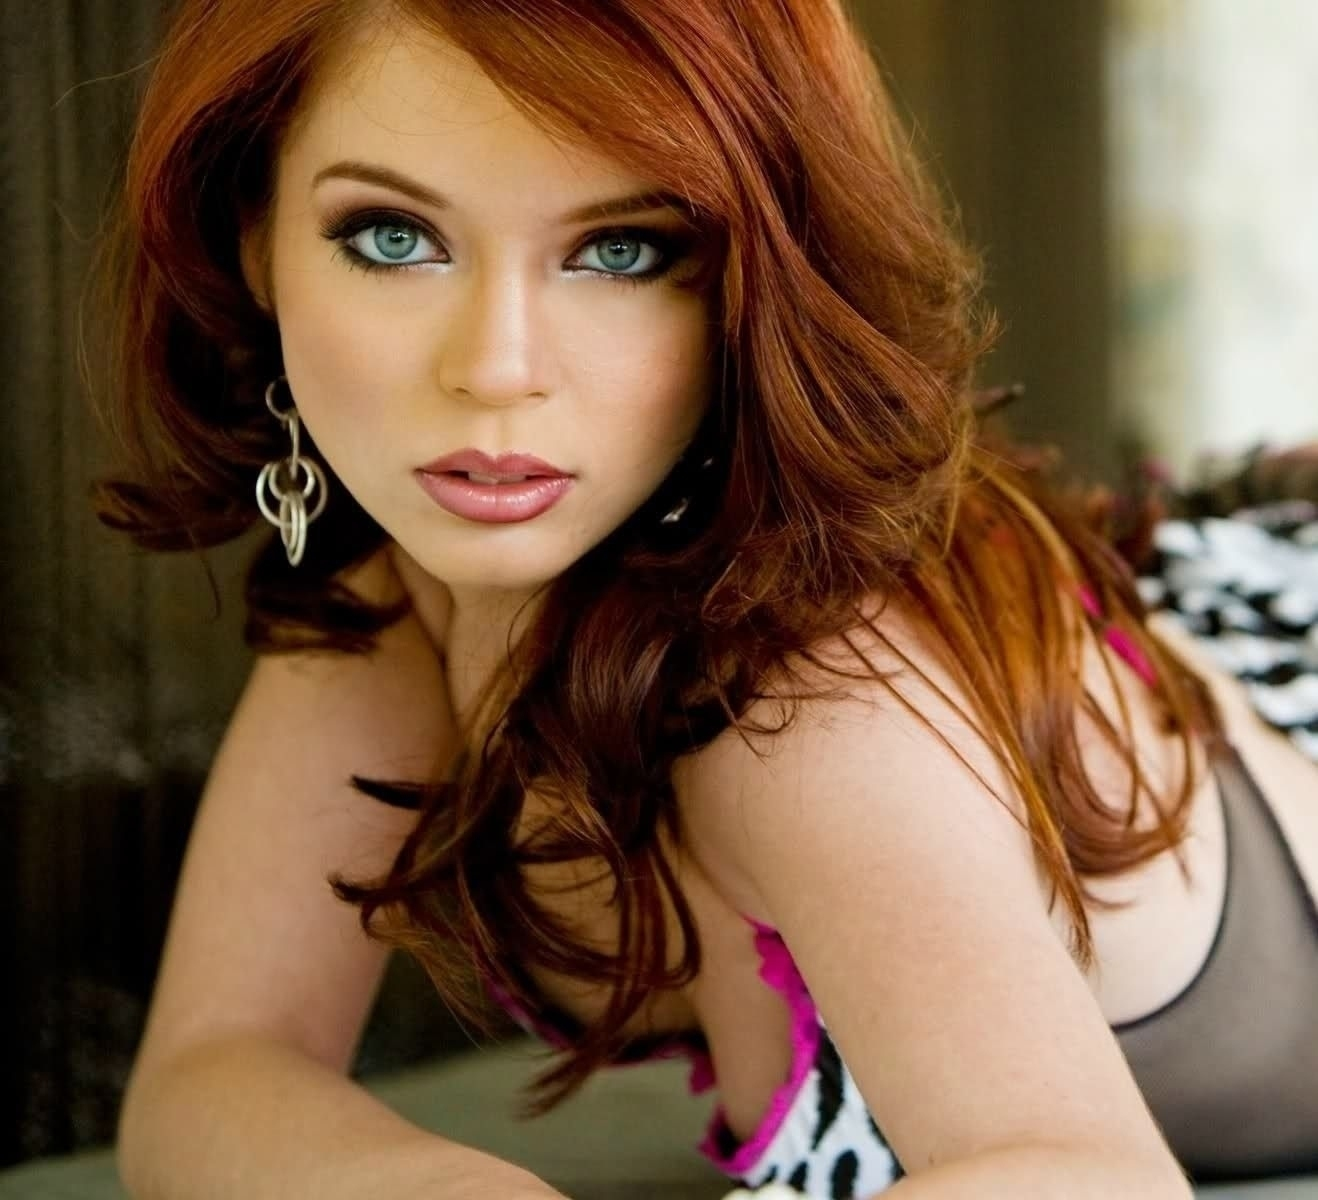 Best Makeup For Red Hair And Hazel Eyes – Wavy Haircut within Best Eyeshadow For Red Hair And Hazel Eyes